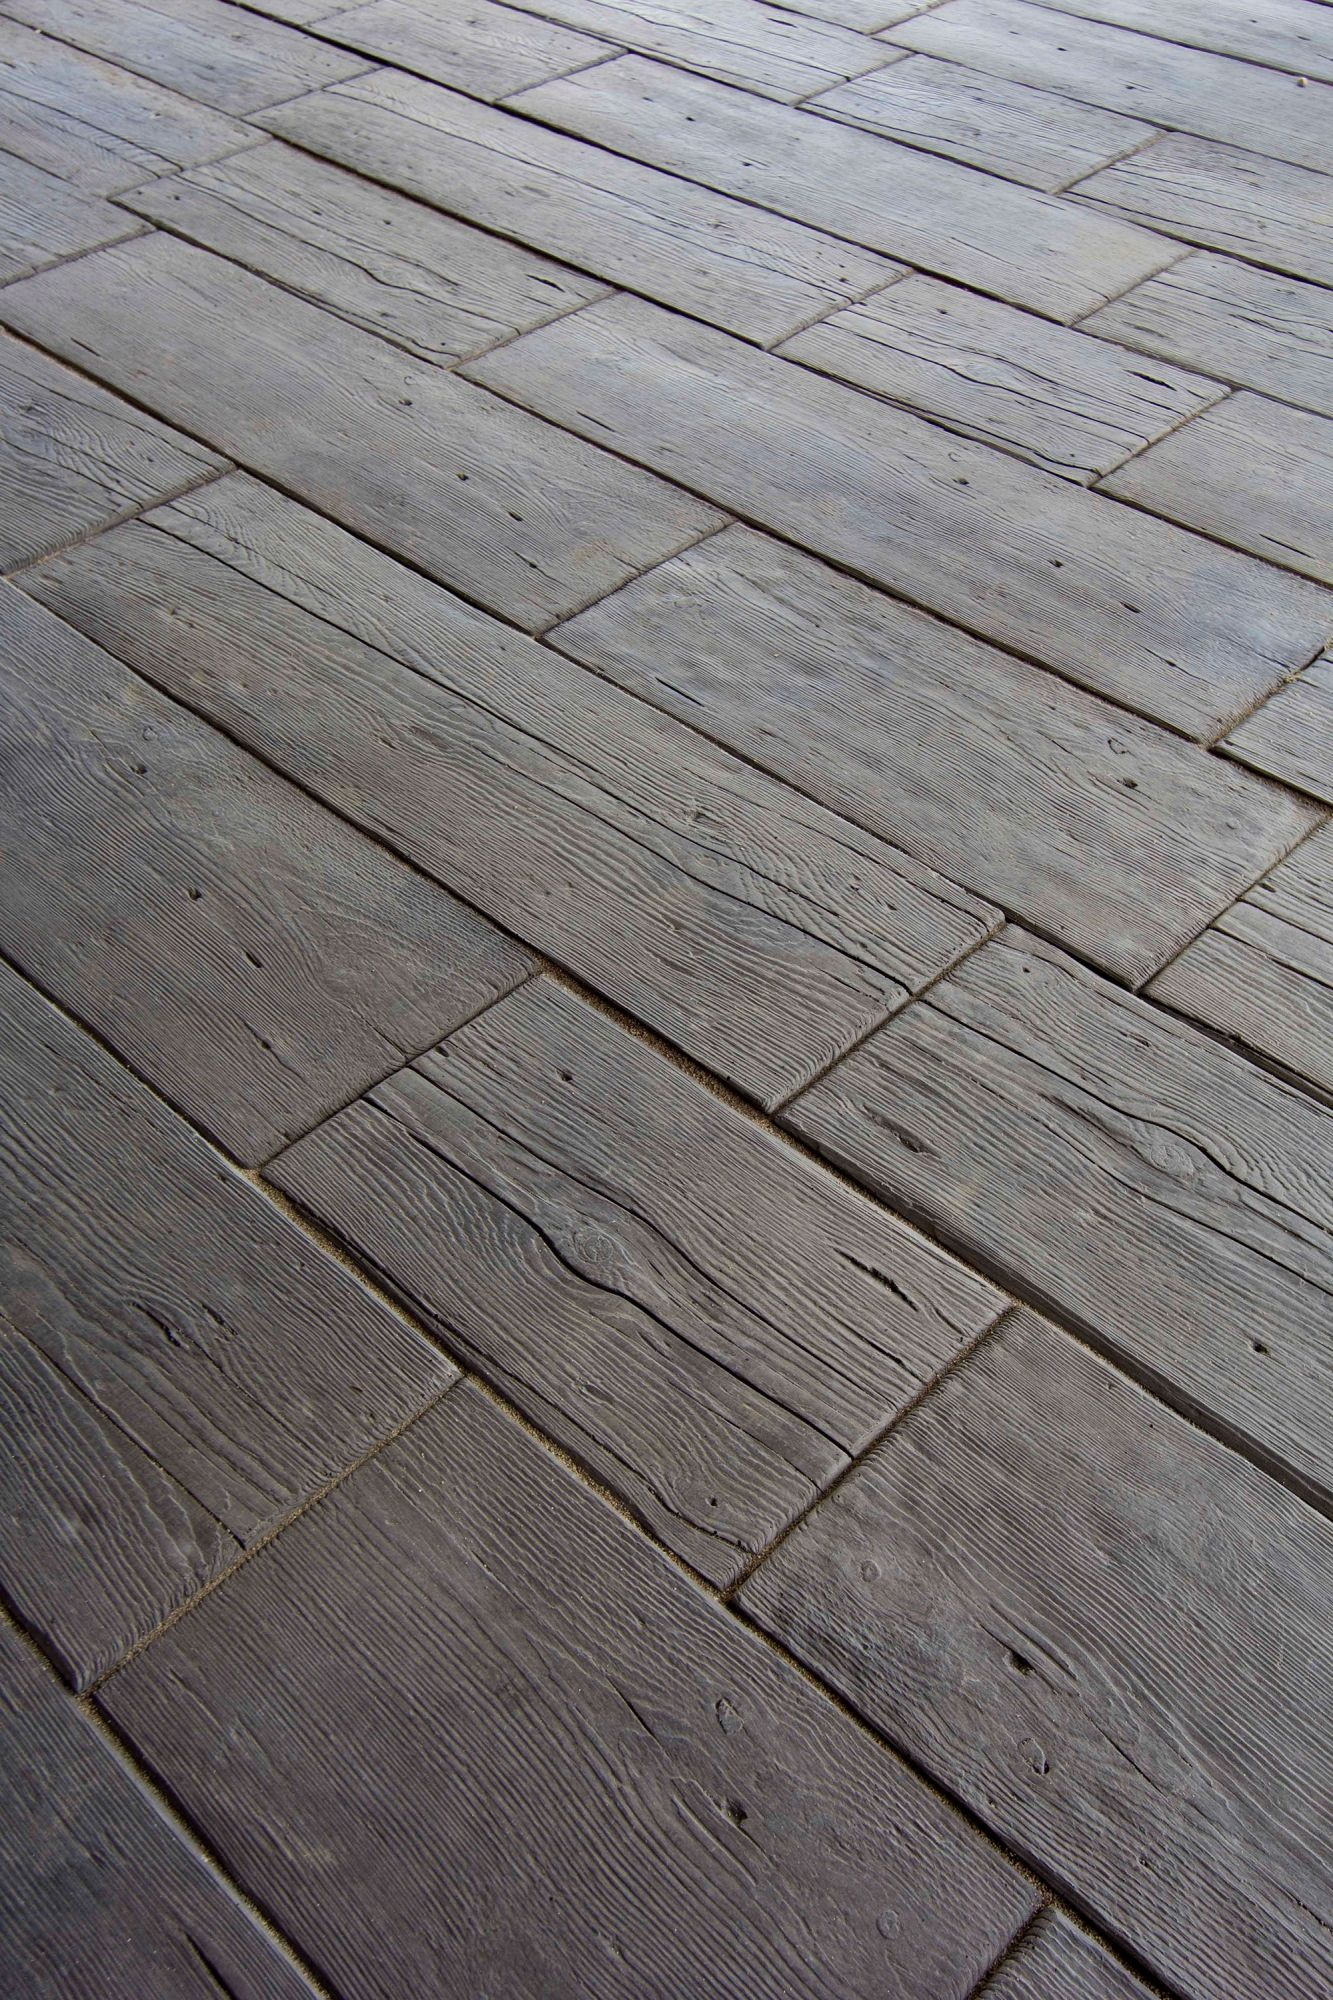 Rustic wood nope 2 thick concrete pavers barn plank landscape rustic wood nope 2 thick concrete pavers barn plank landscape tile dailygadgetfo Gallery